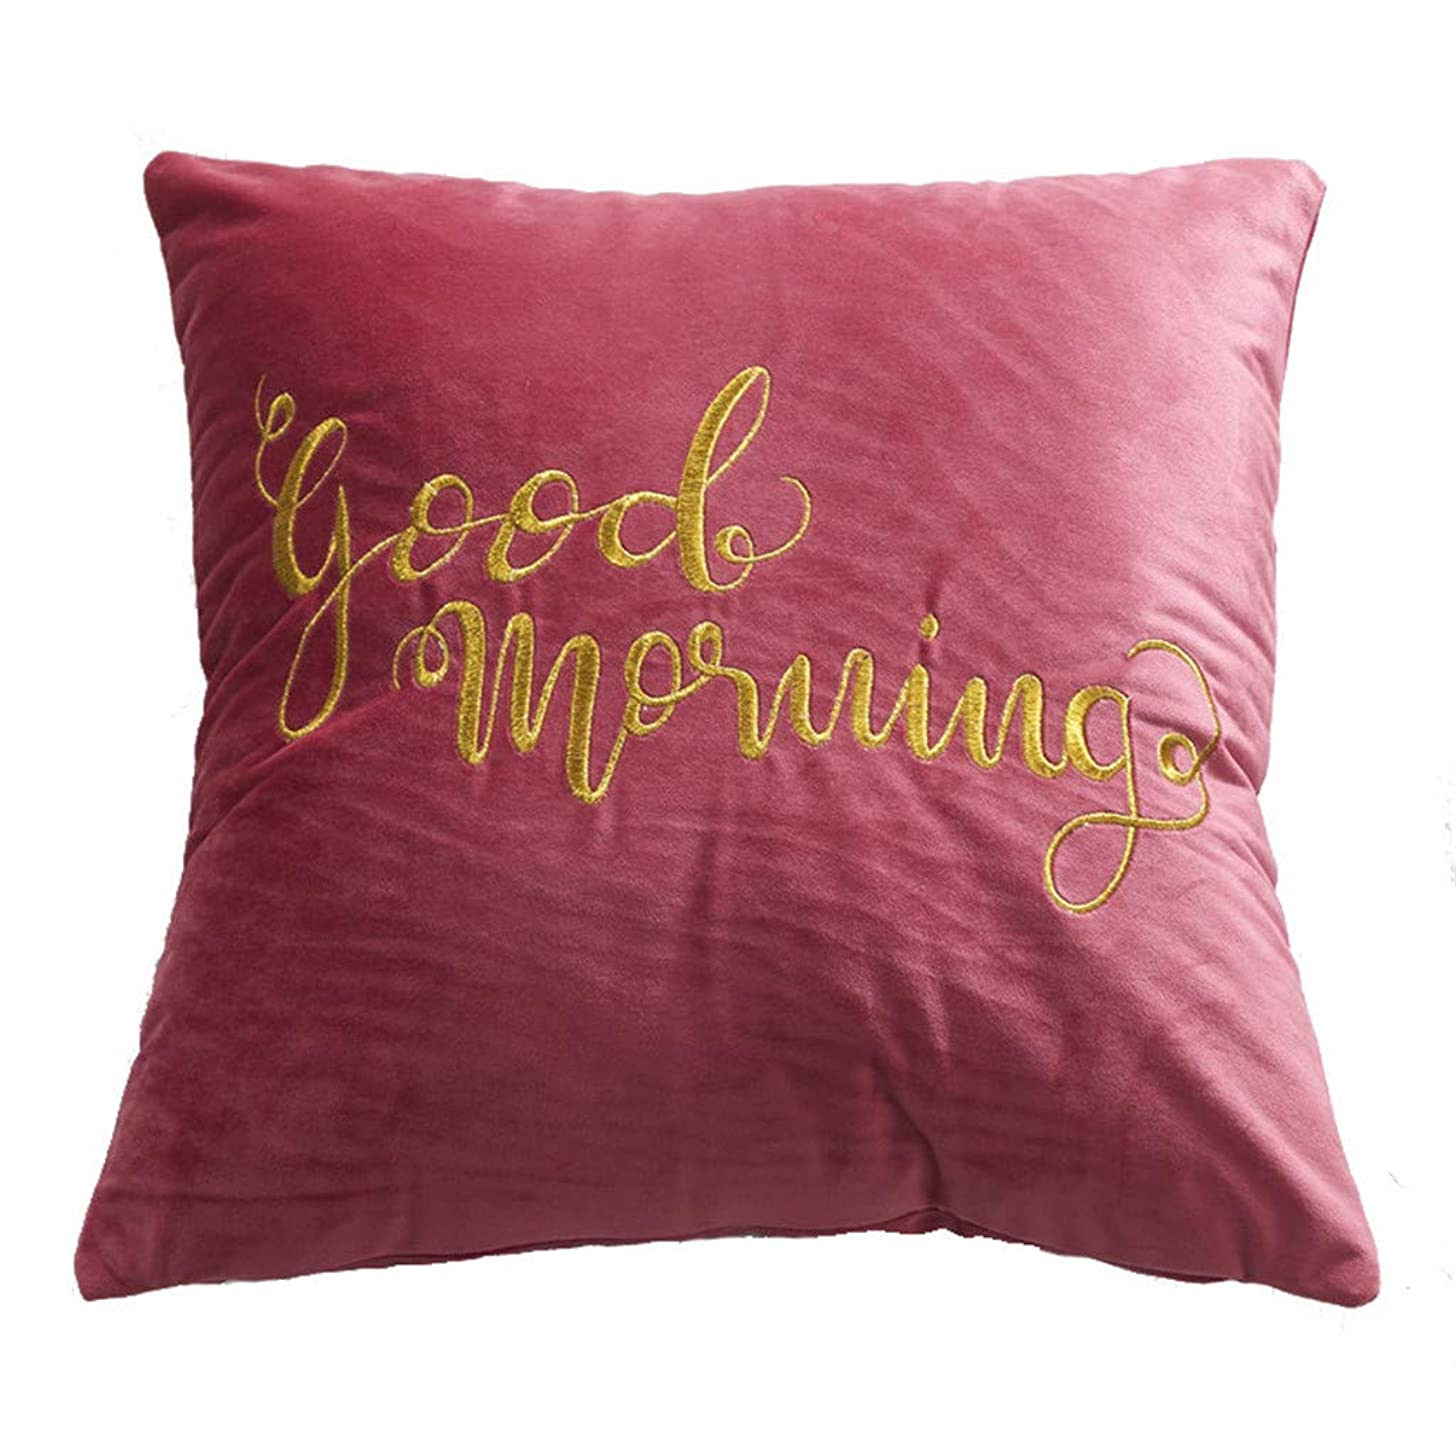 Alixyz Fashion Simple Dutch Velvet Embroidery Pillow Pillow Cushion Cover Coffee Shop Home Decoration Cushion Cover (M, Red)